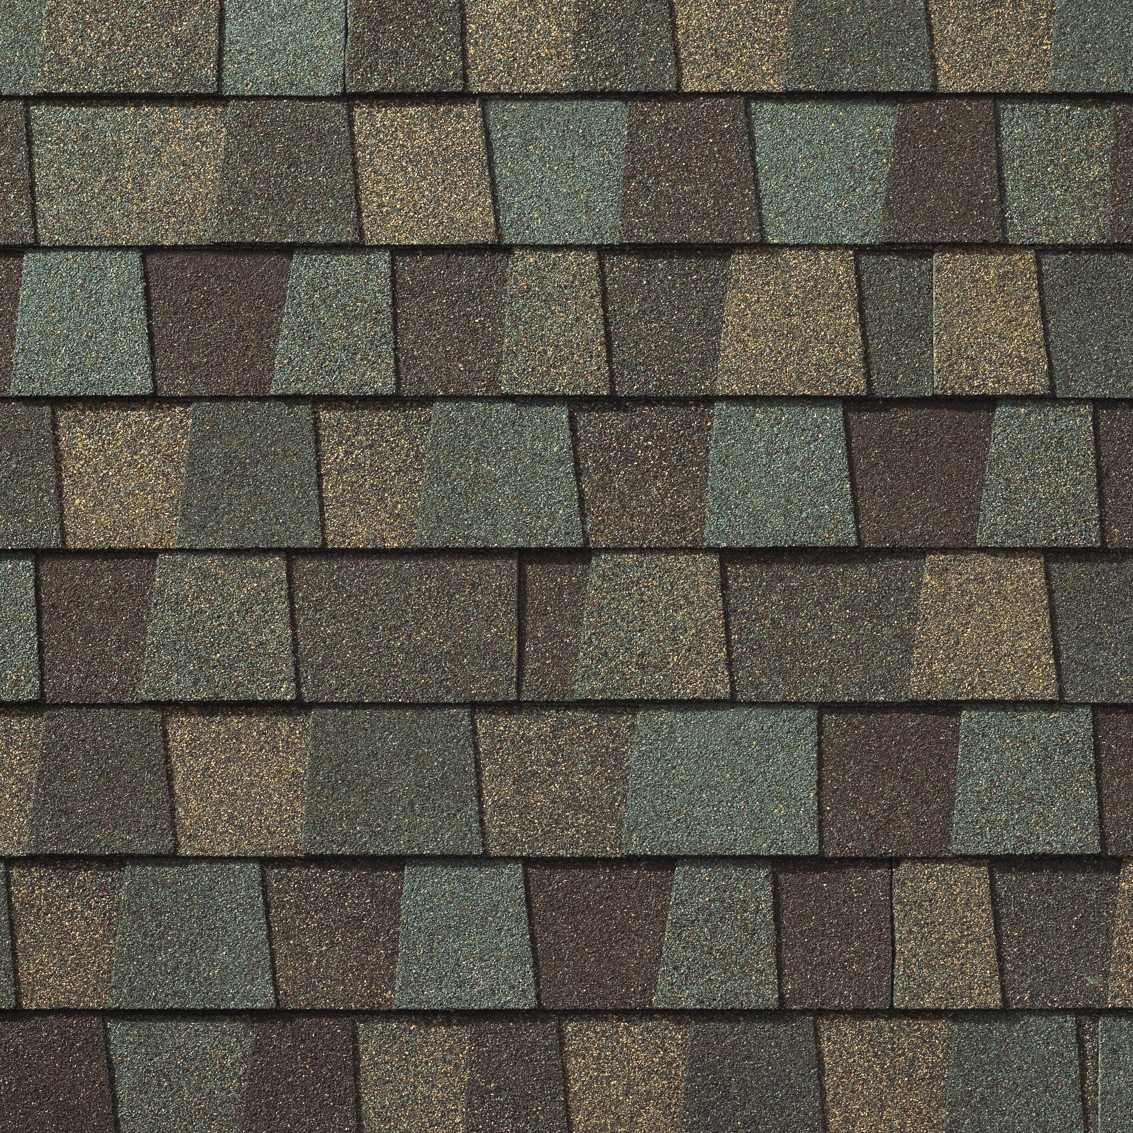 Tamko Heritage Shingles Reviews | Cedar Shakes Lowes | Heritage Shingles